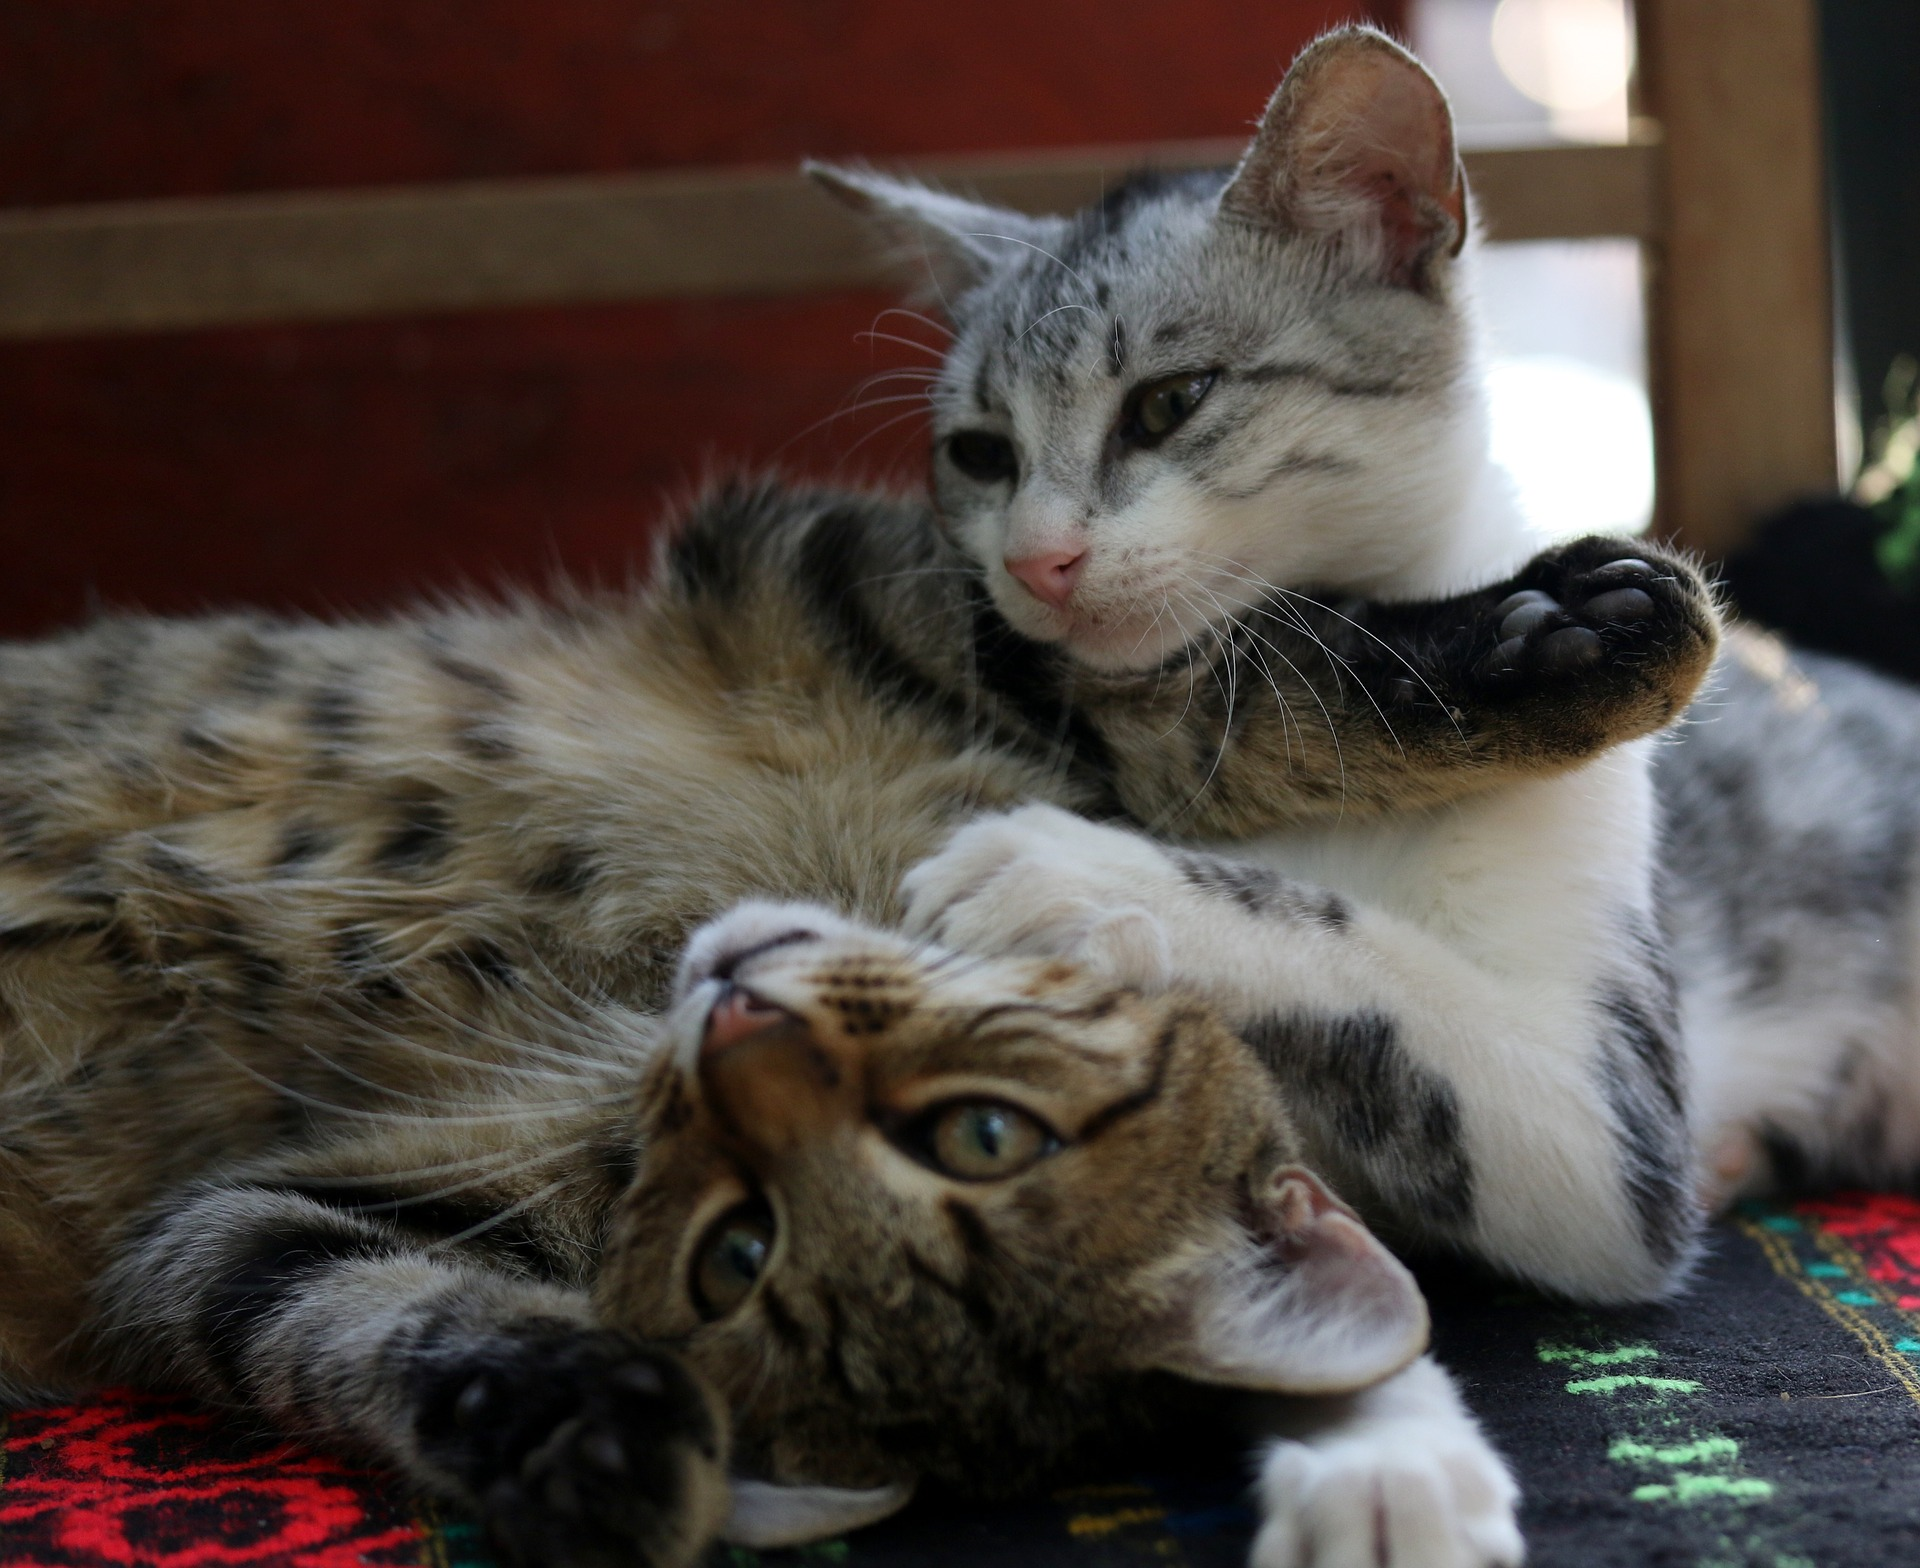 Cat Adoption: Bonded Pairs